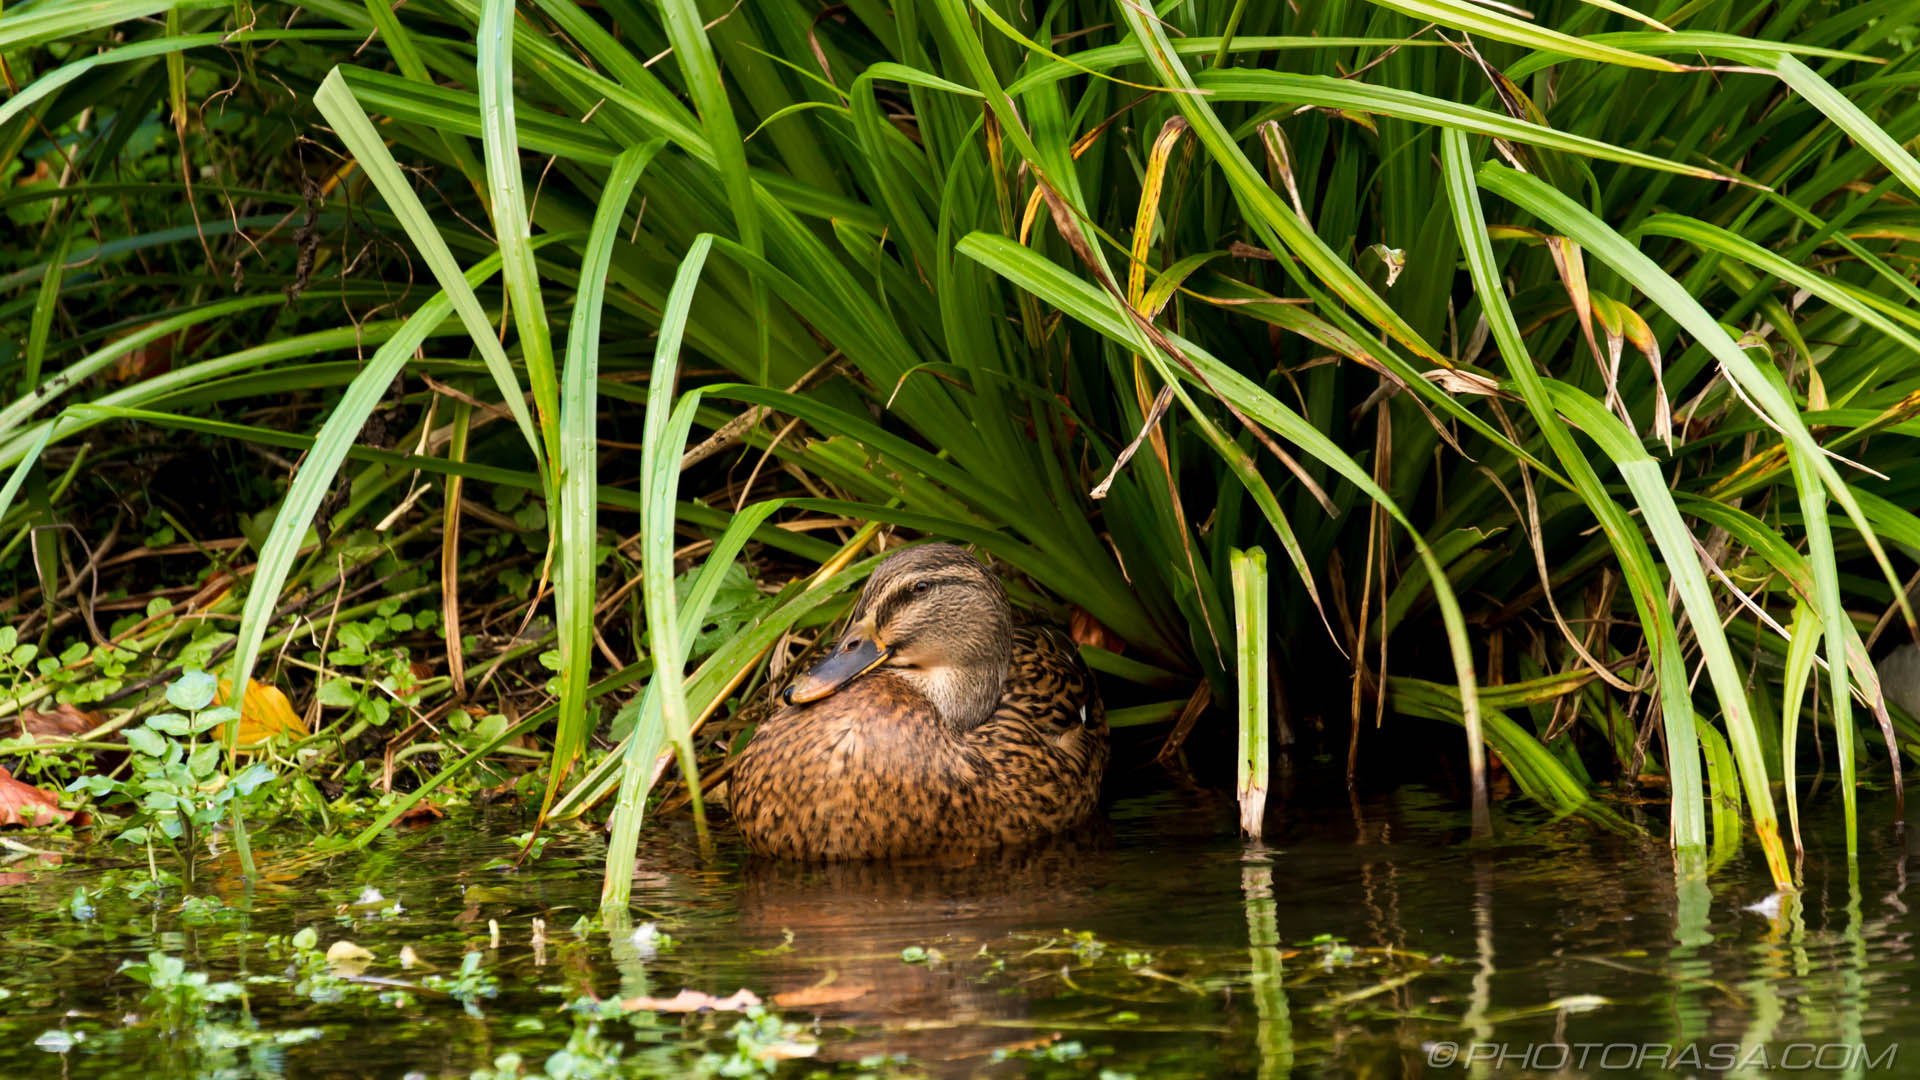 http://photorasa.com/mallard-ducks/wild-duck-in-the-greenery/